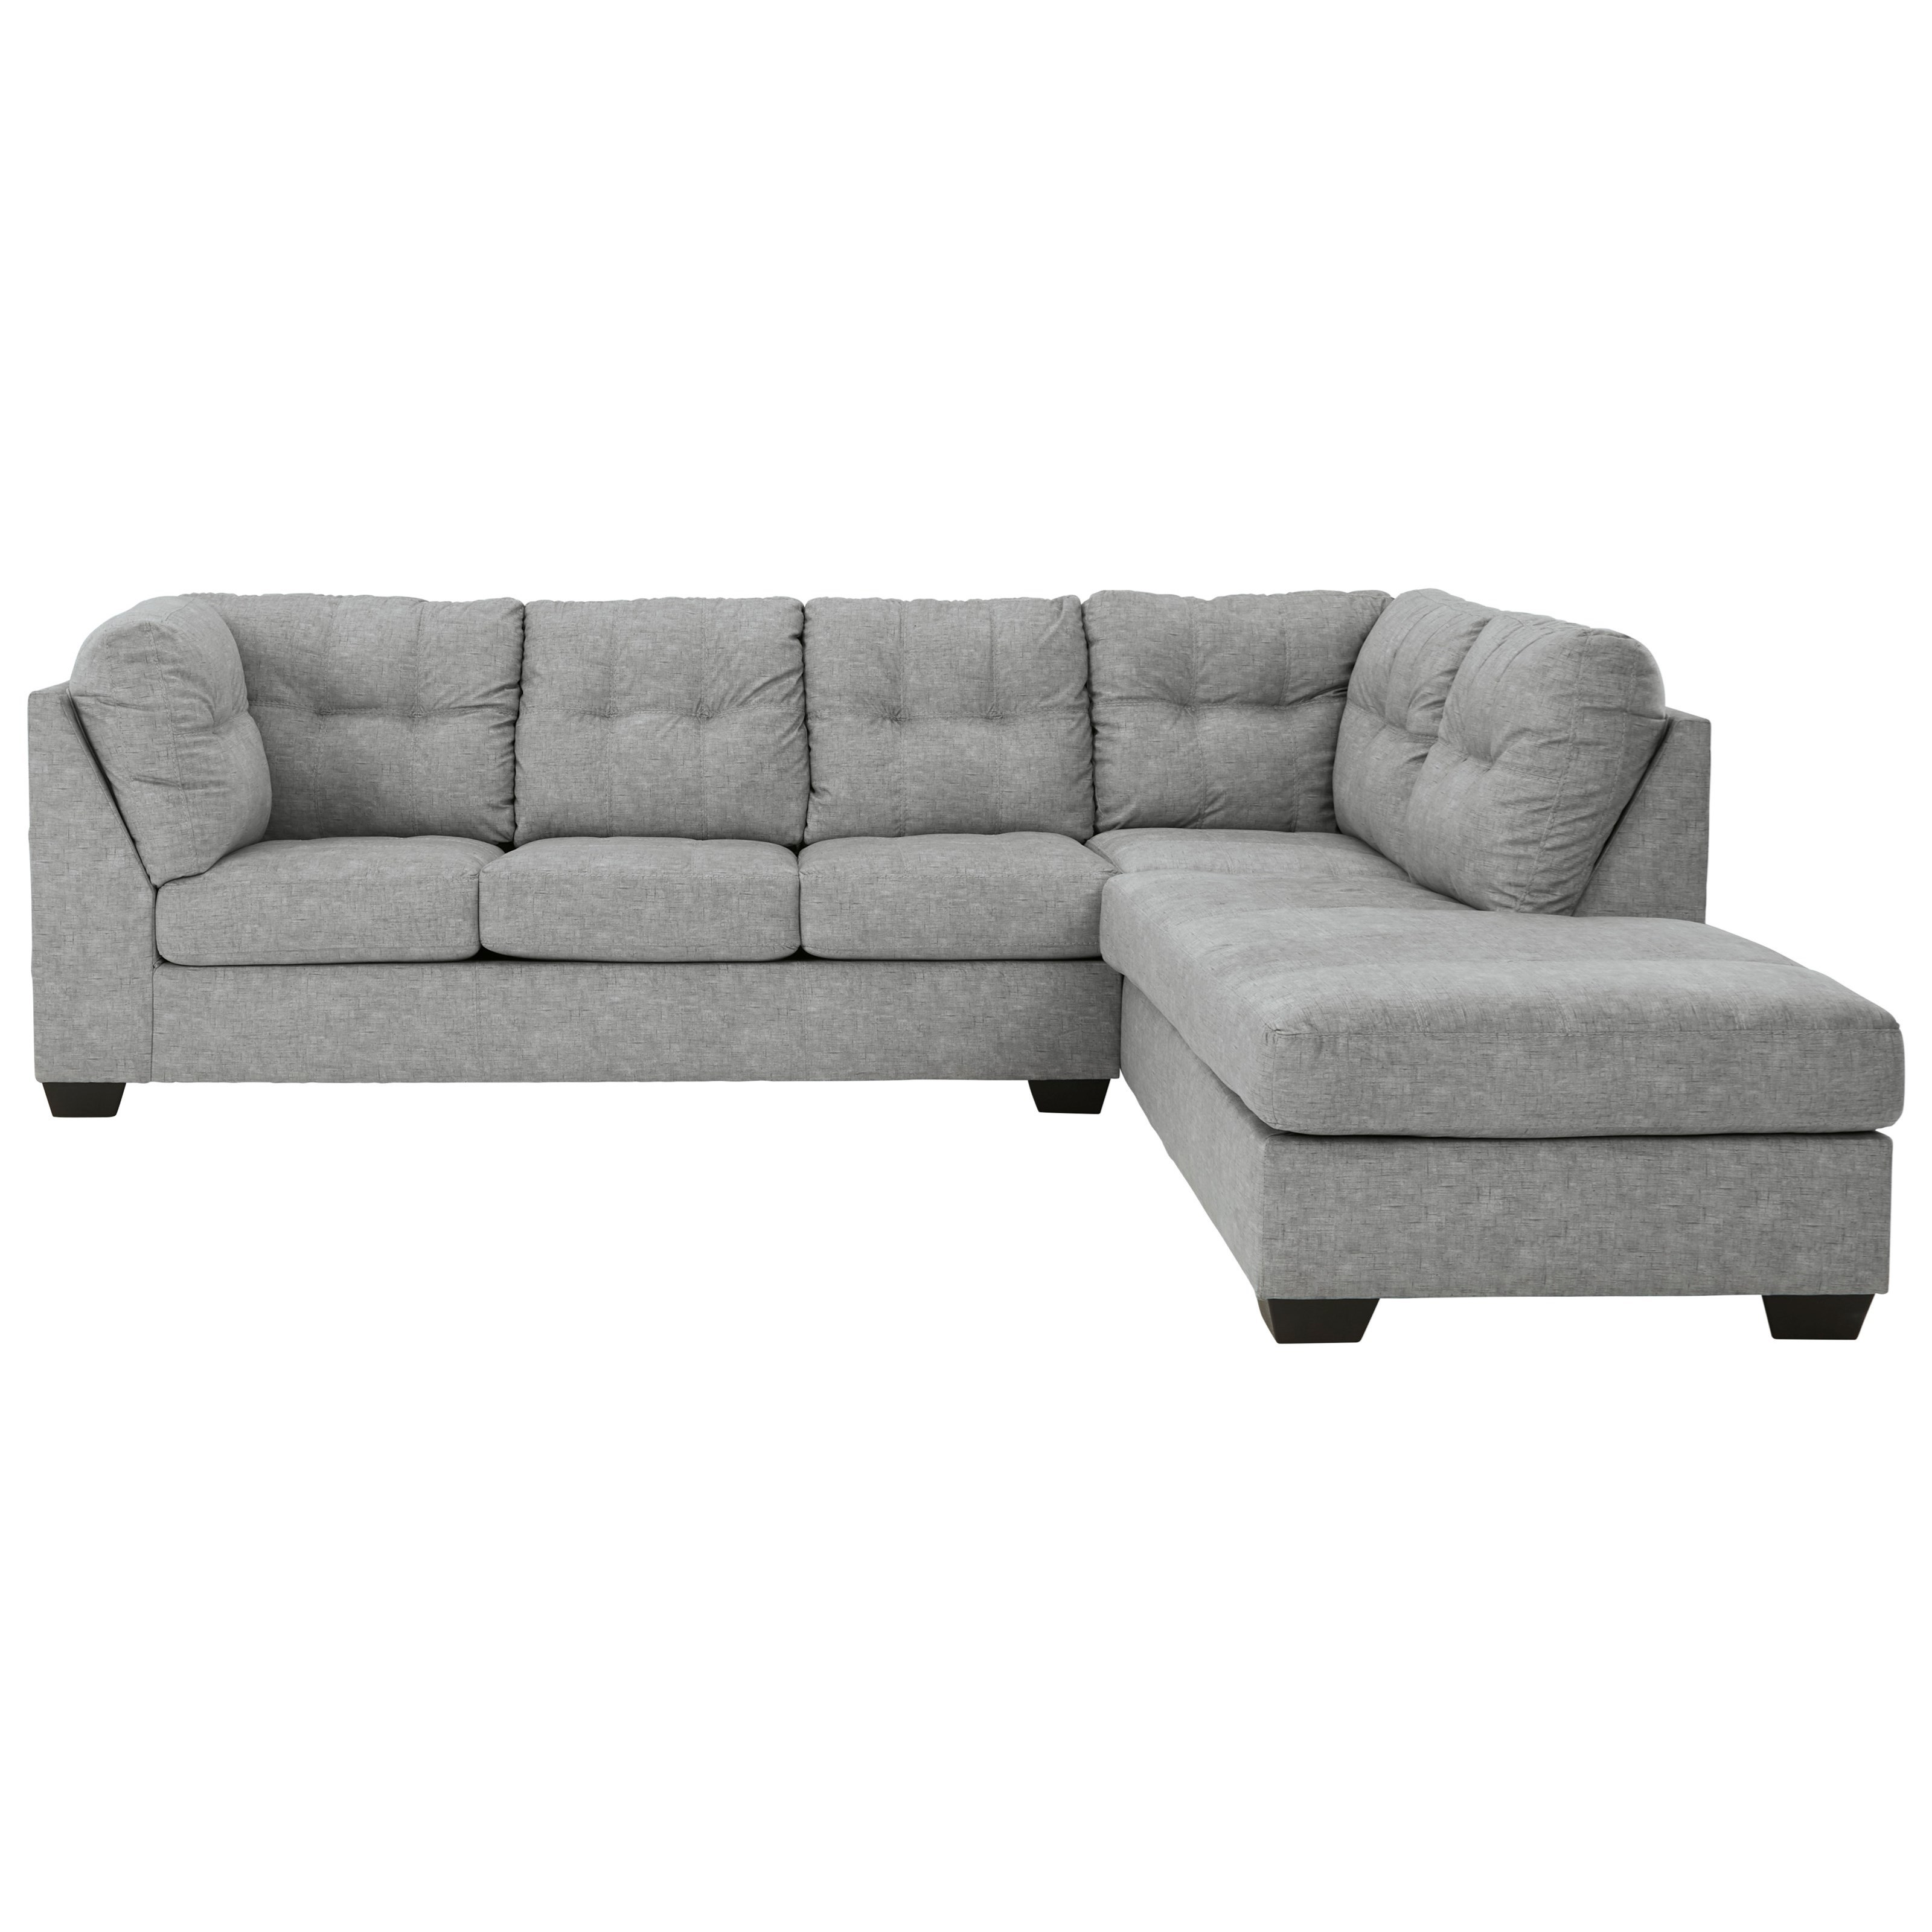 Falkirk 2-Piece Sectional with Chaise & Full Sleeper by Benchcraft at Miller Waldrop Furniture and Decor